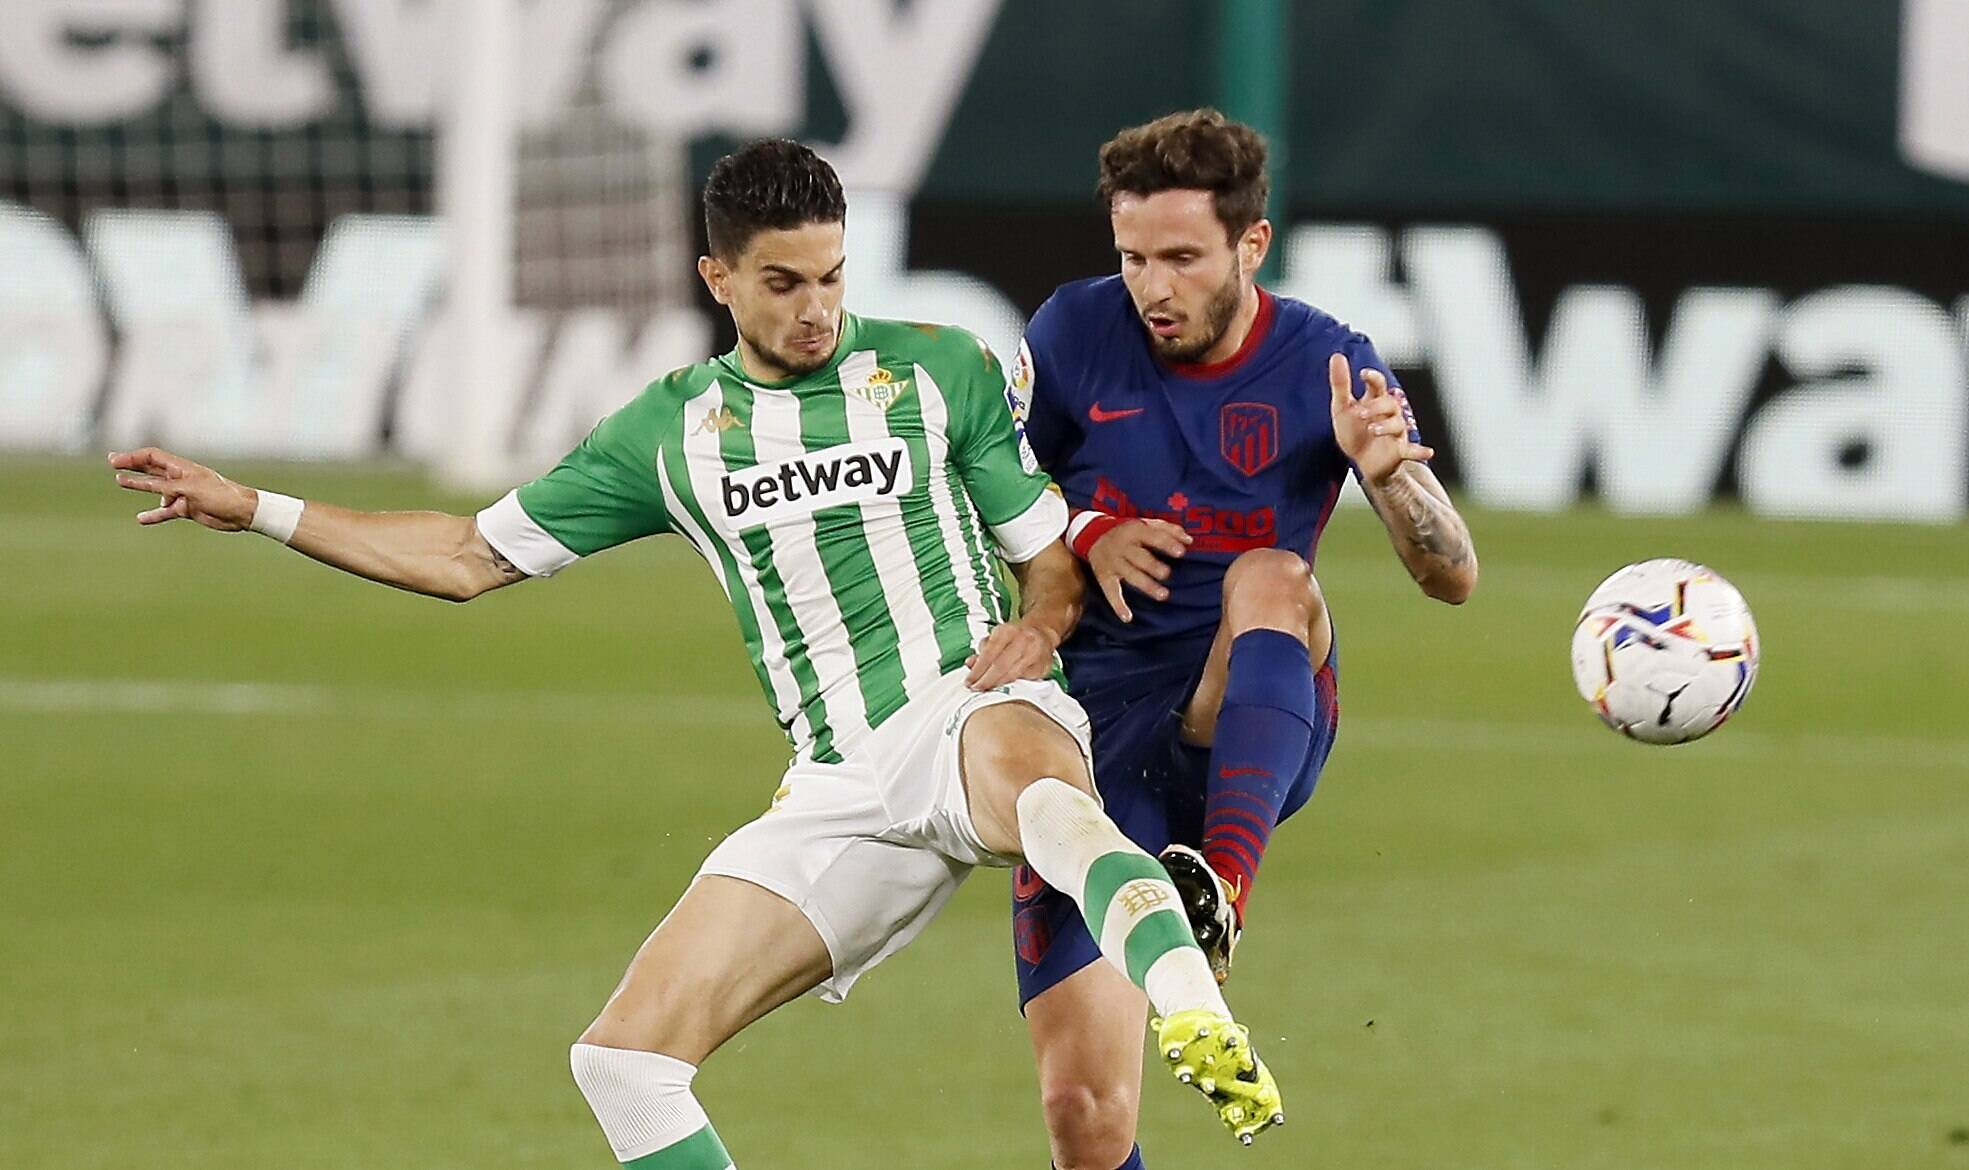 Real Betis Atletico